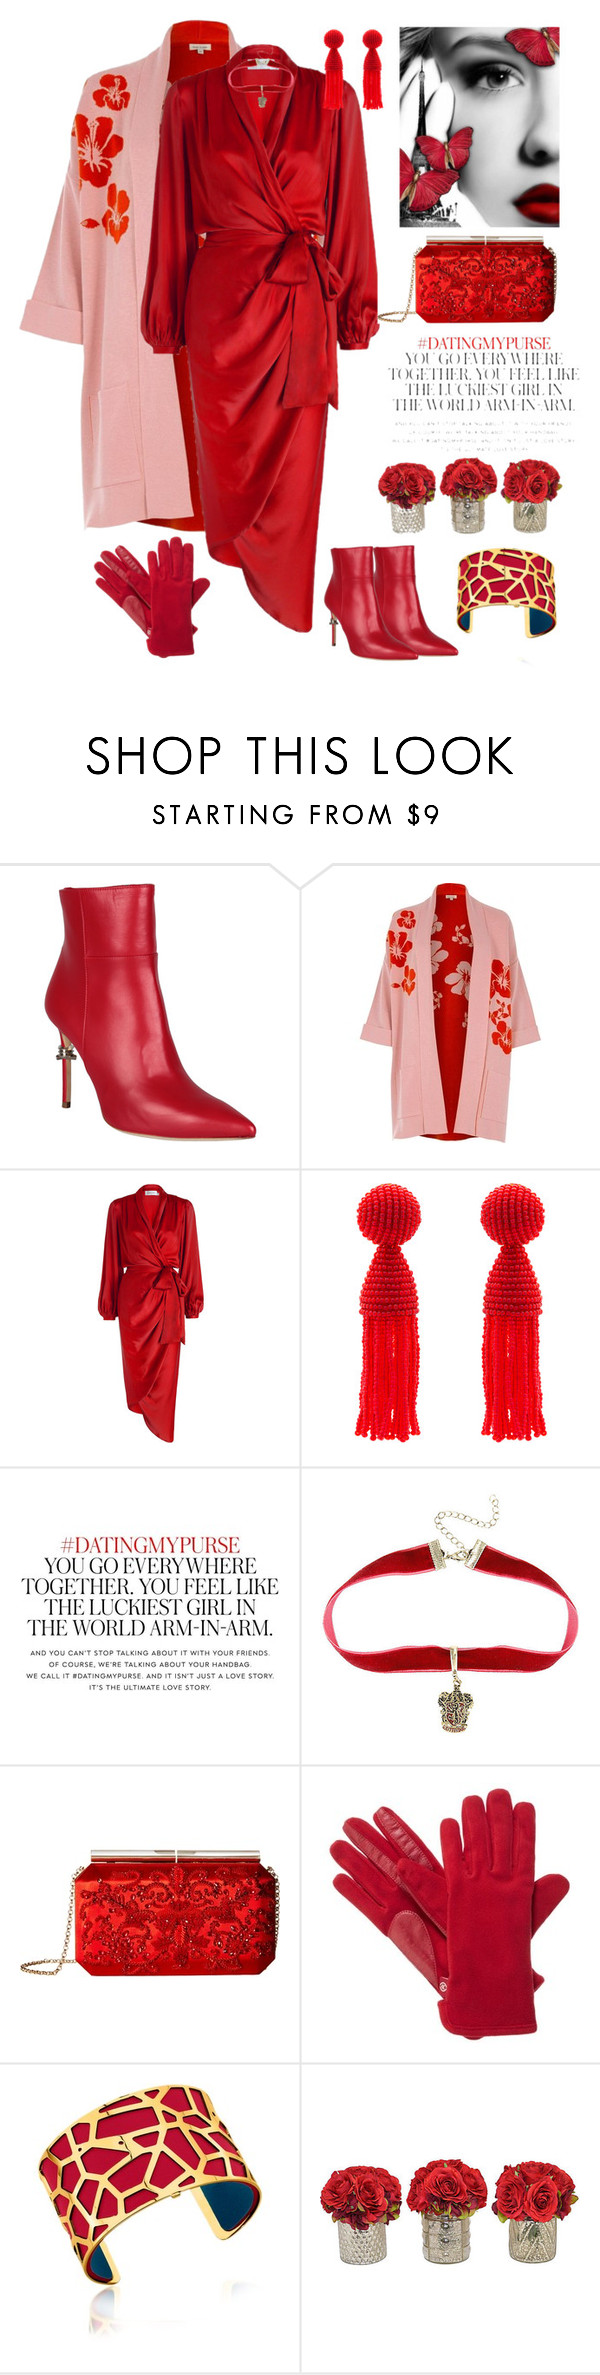 """pink and red"" by katymill ❤ liked on Polyvore featuring Dsquared2, River Island, Zimmermann, Oscar de la Renta, Kate Spade, Warner Bros., Isotoner, Les Georgettes and The French Bee"